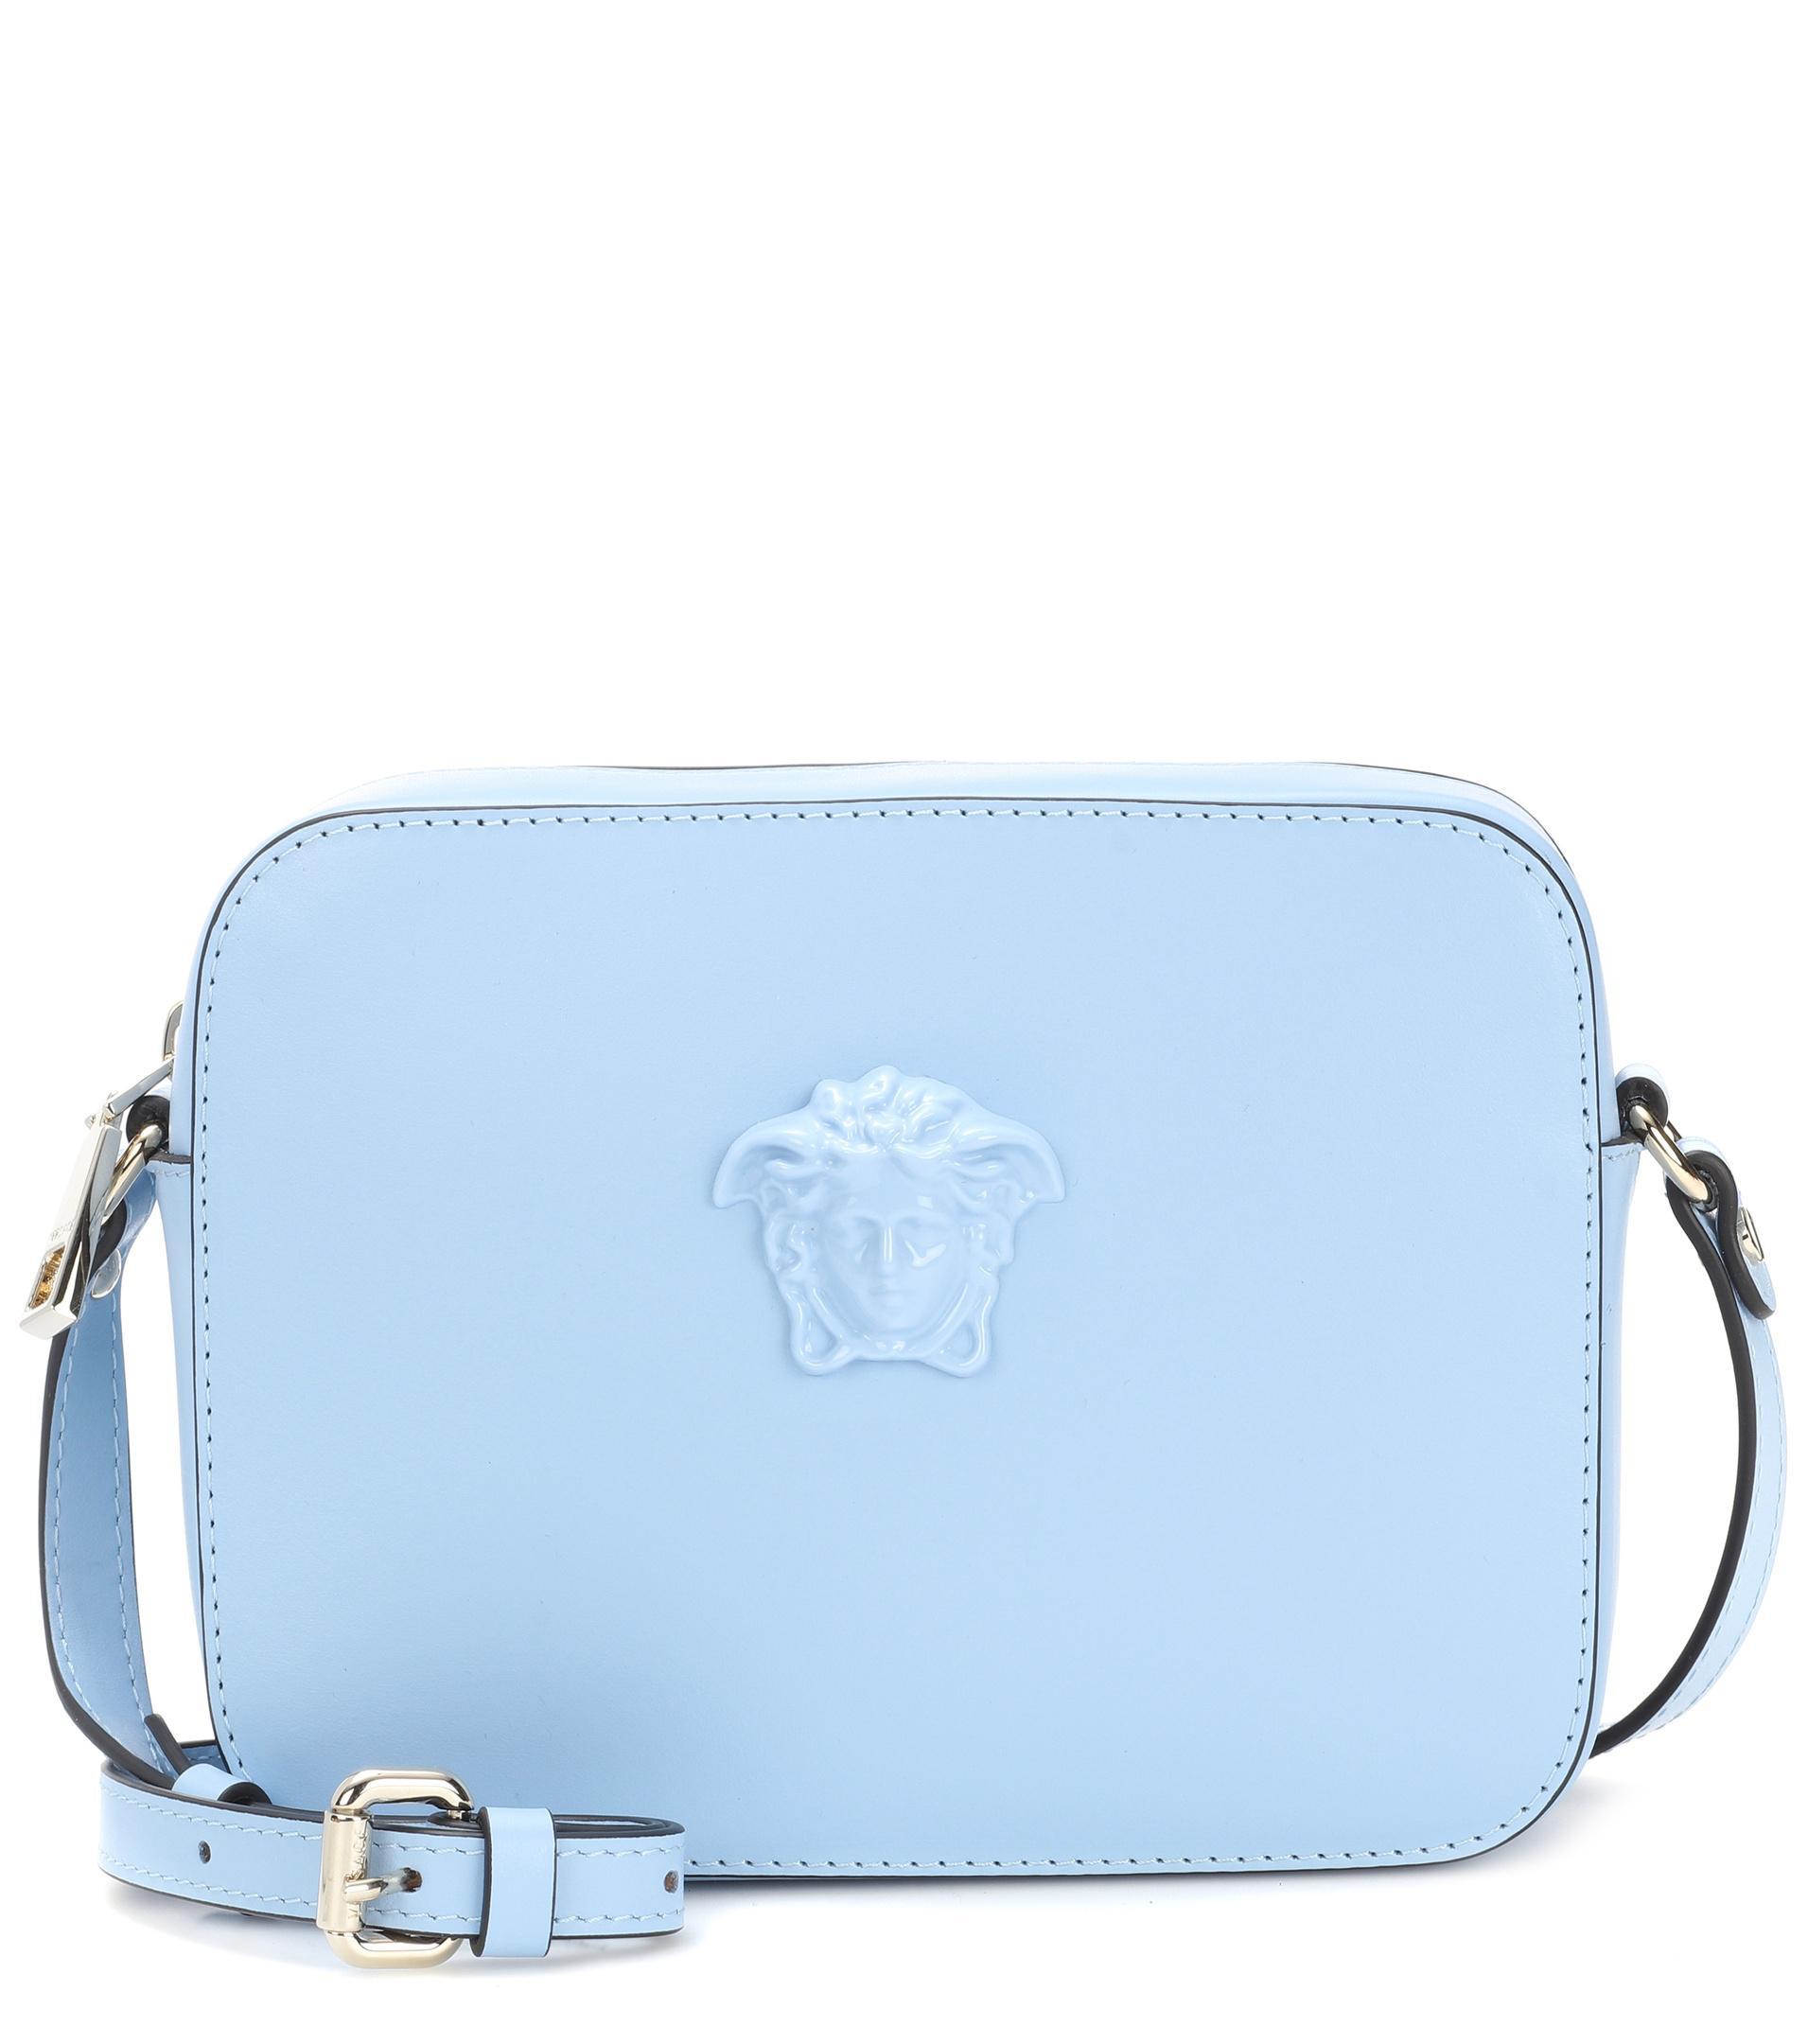 6bce6031ad9d Versace Palazzo Leather Shoulder Bag in Blue - Lyst